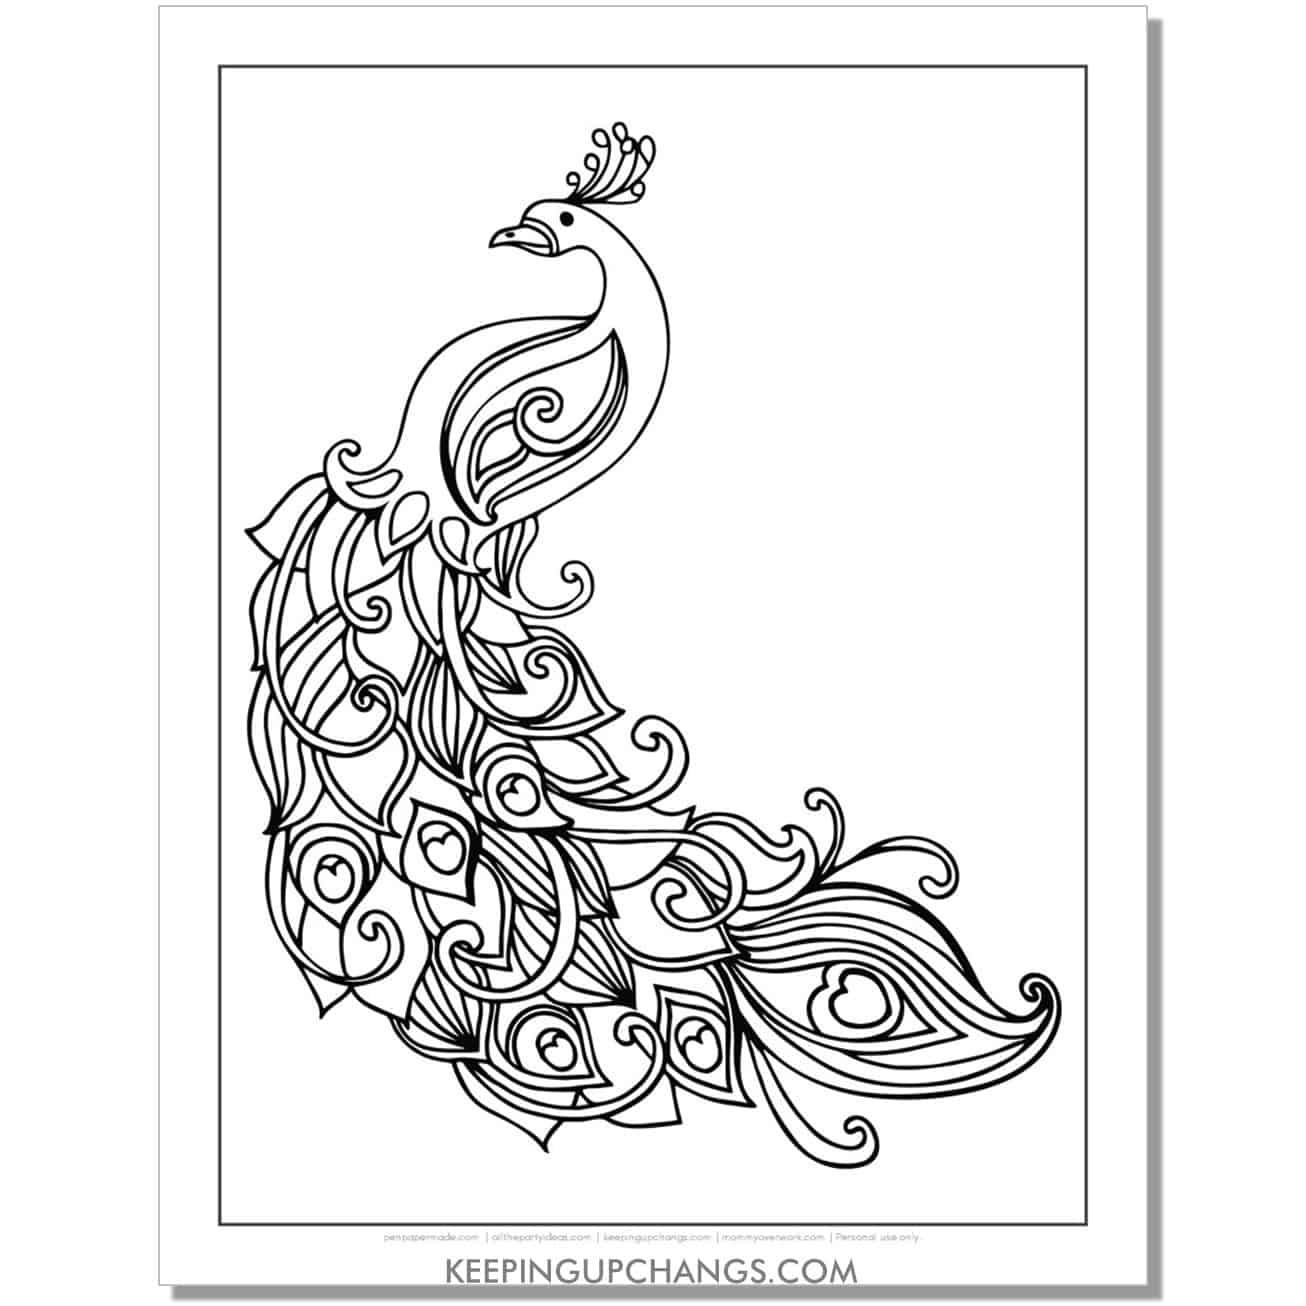 simple realistic peacock coloring page.